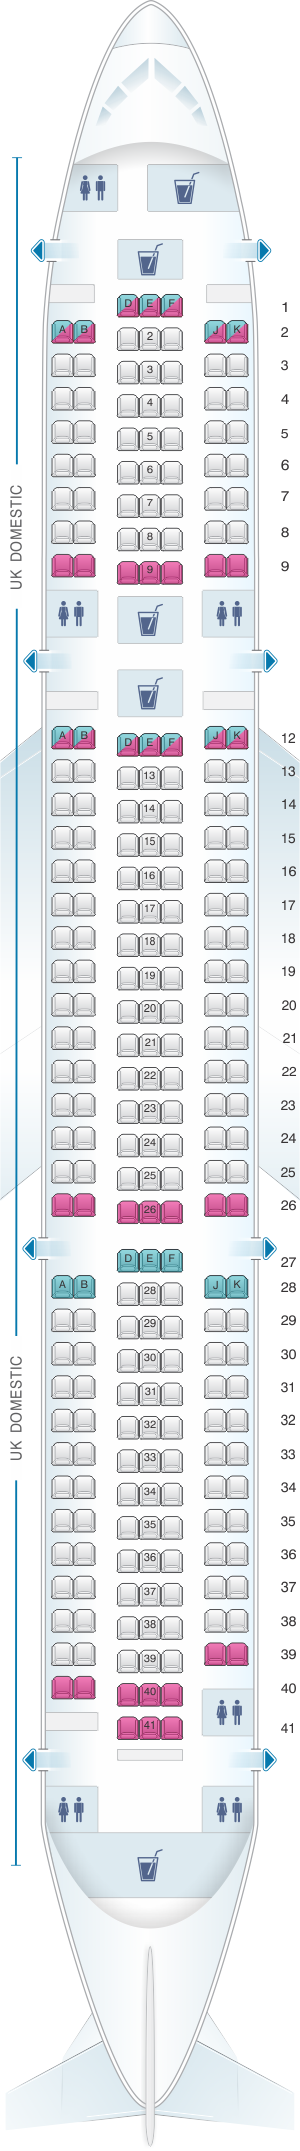 Seat map for British Airways Boeing B767 Domestic Layout